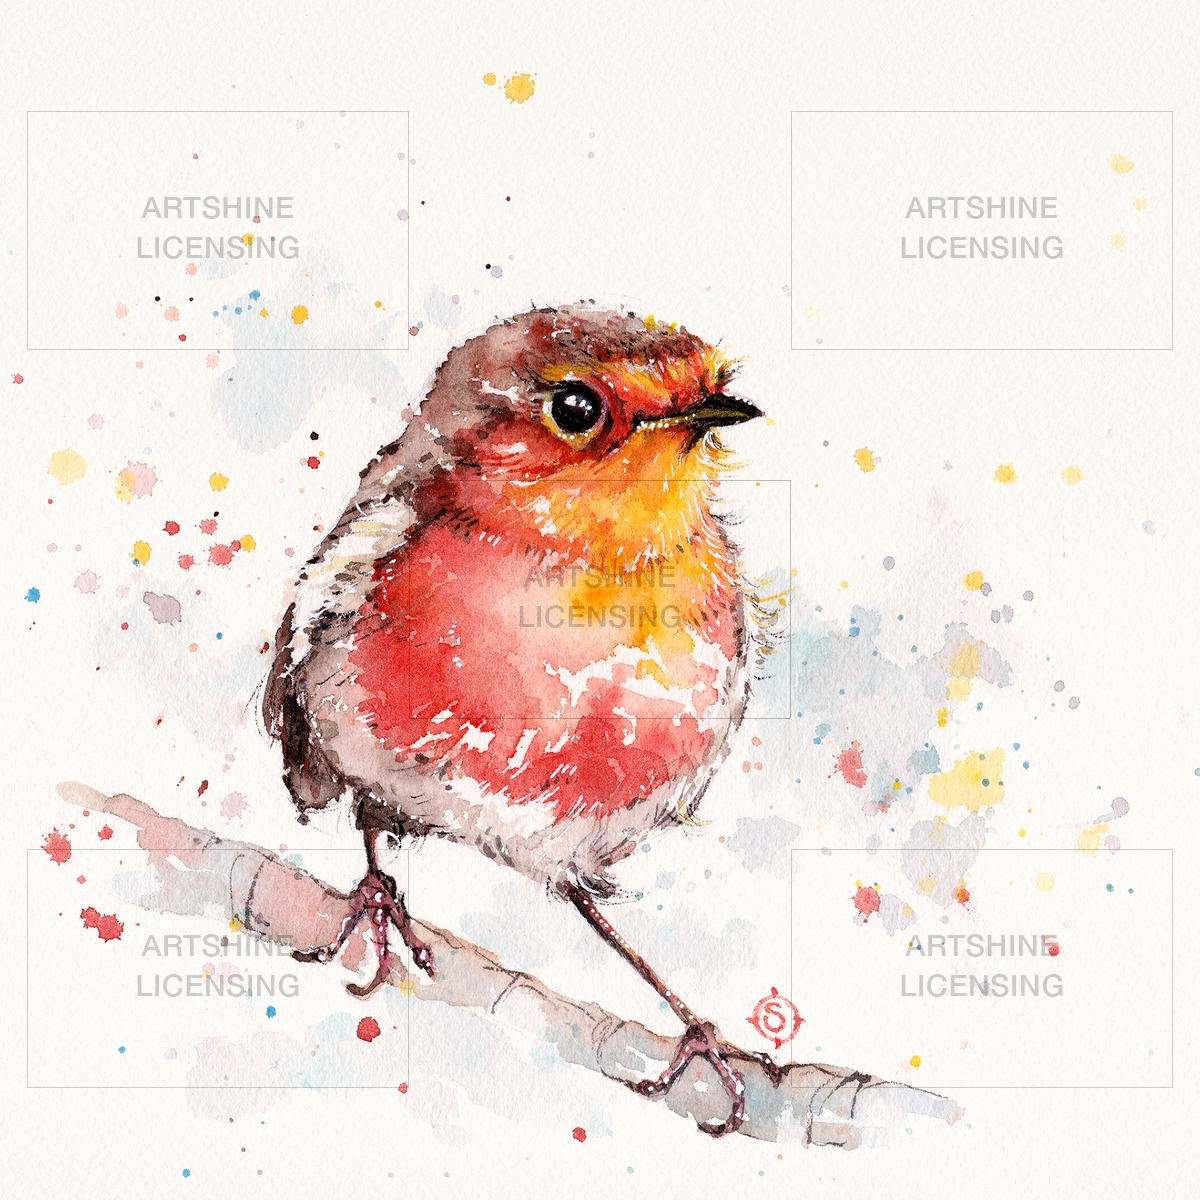 Adventure Awaits [Baby Robin Red Breast]